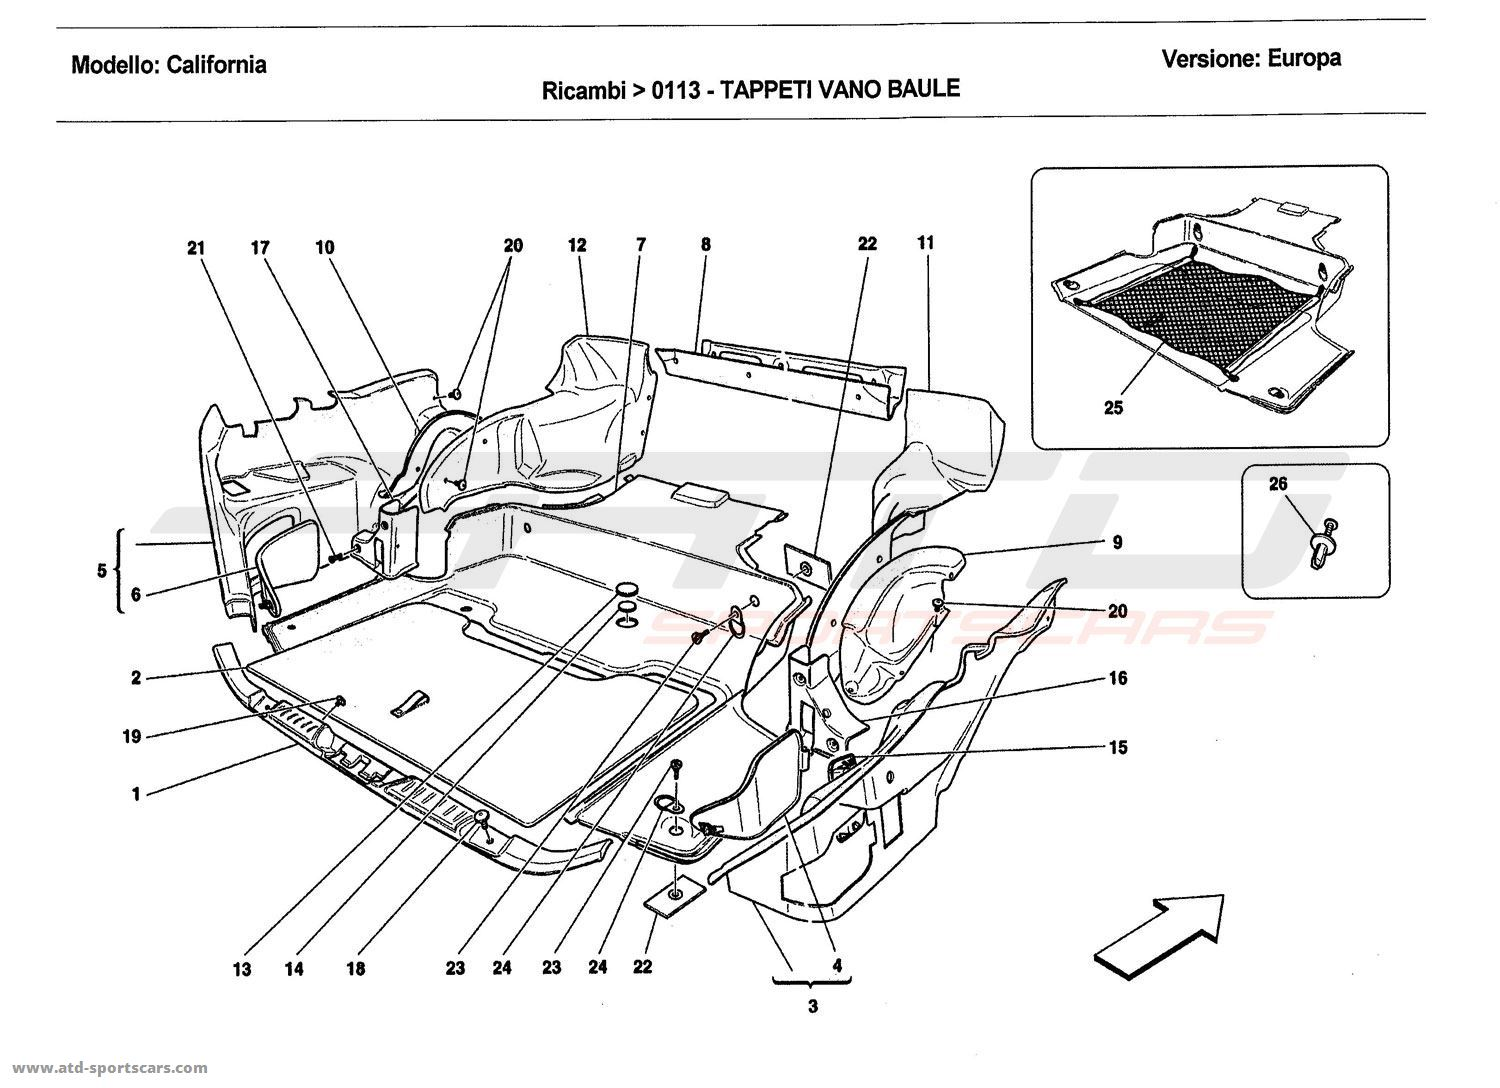 95 Bmw 318i Engine Diagram furthermore Ferrari California Parts Html furthermore Ford F 150 Maf Sensor Wiring Diagram in addition 2007 Gmc Envoy L6 Engine  partment Fuse Panel And Relay Block Diagram additionally Bmw F30 Fuse Box Diagram. on fuse box for bmw e90